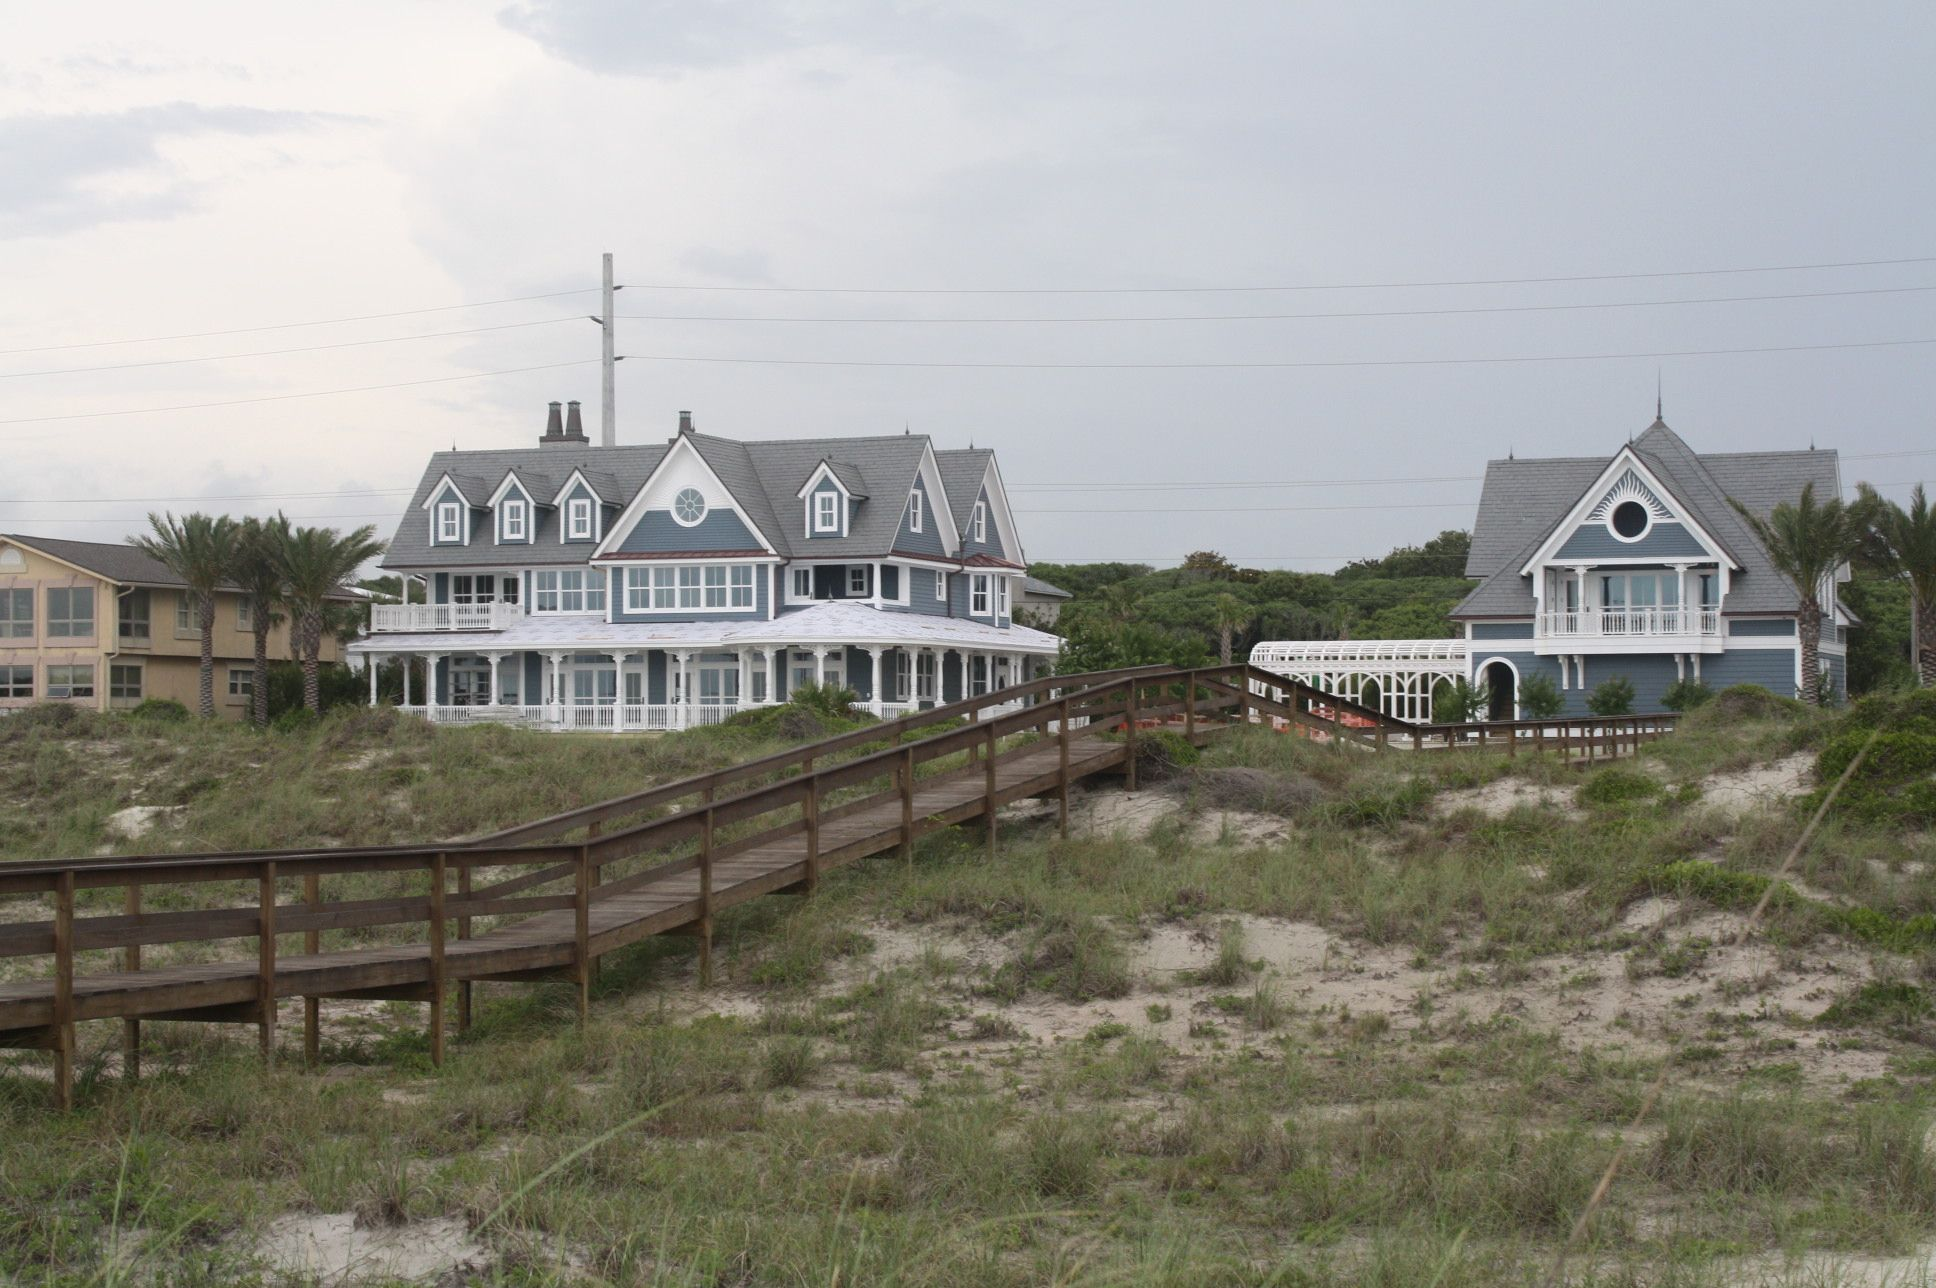 Miraculous John Grisham Home On Amelia Island Some Of The Places I Download Free Architecture Designs Embacsunscenecom